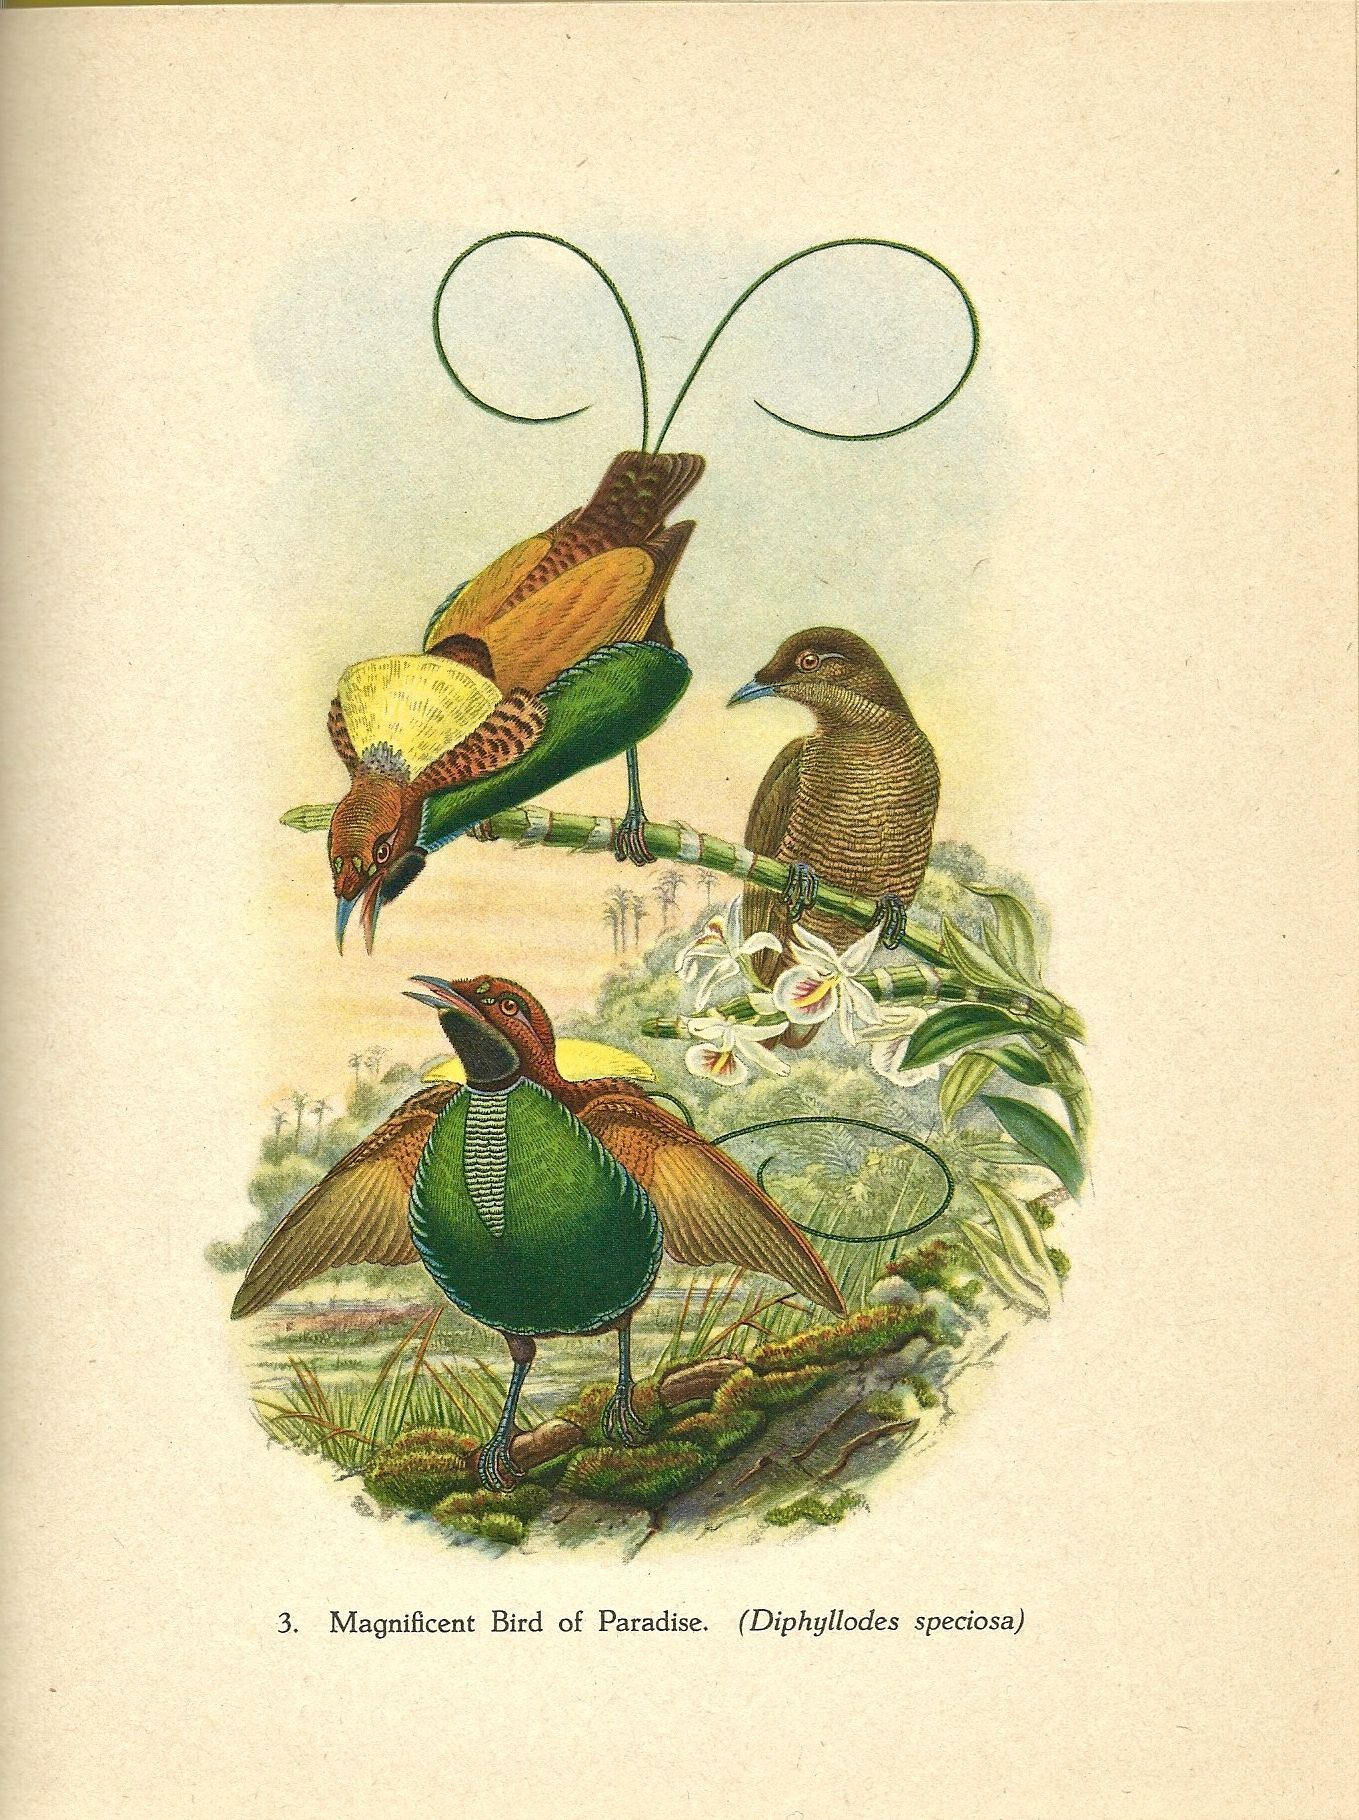 John Gould's Illustration of the Magnificent Bird of Paradise from the 1948 book Tropical Birds.  ($15 for book)  Available at http://www.uncannyartist.com/products/tropical-birds.